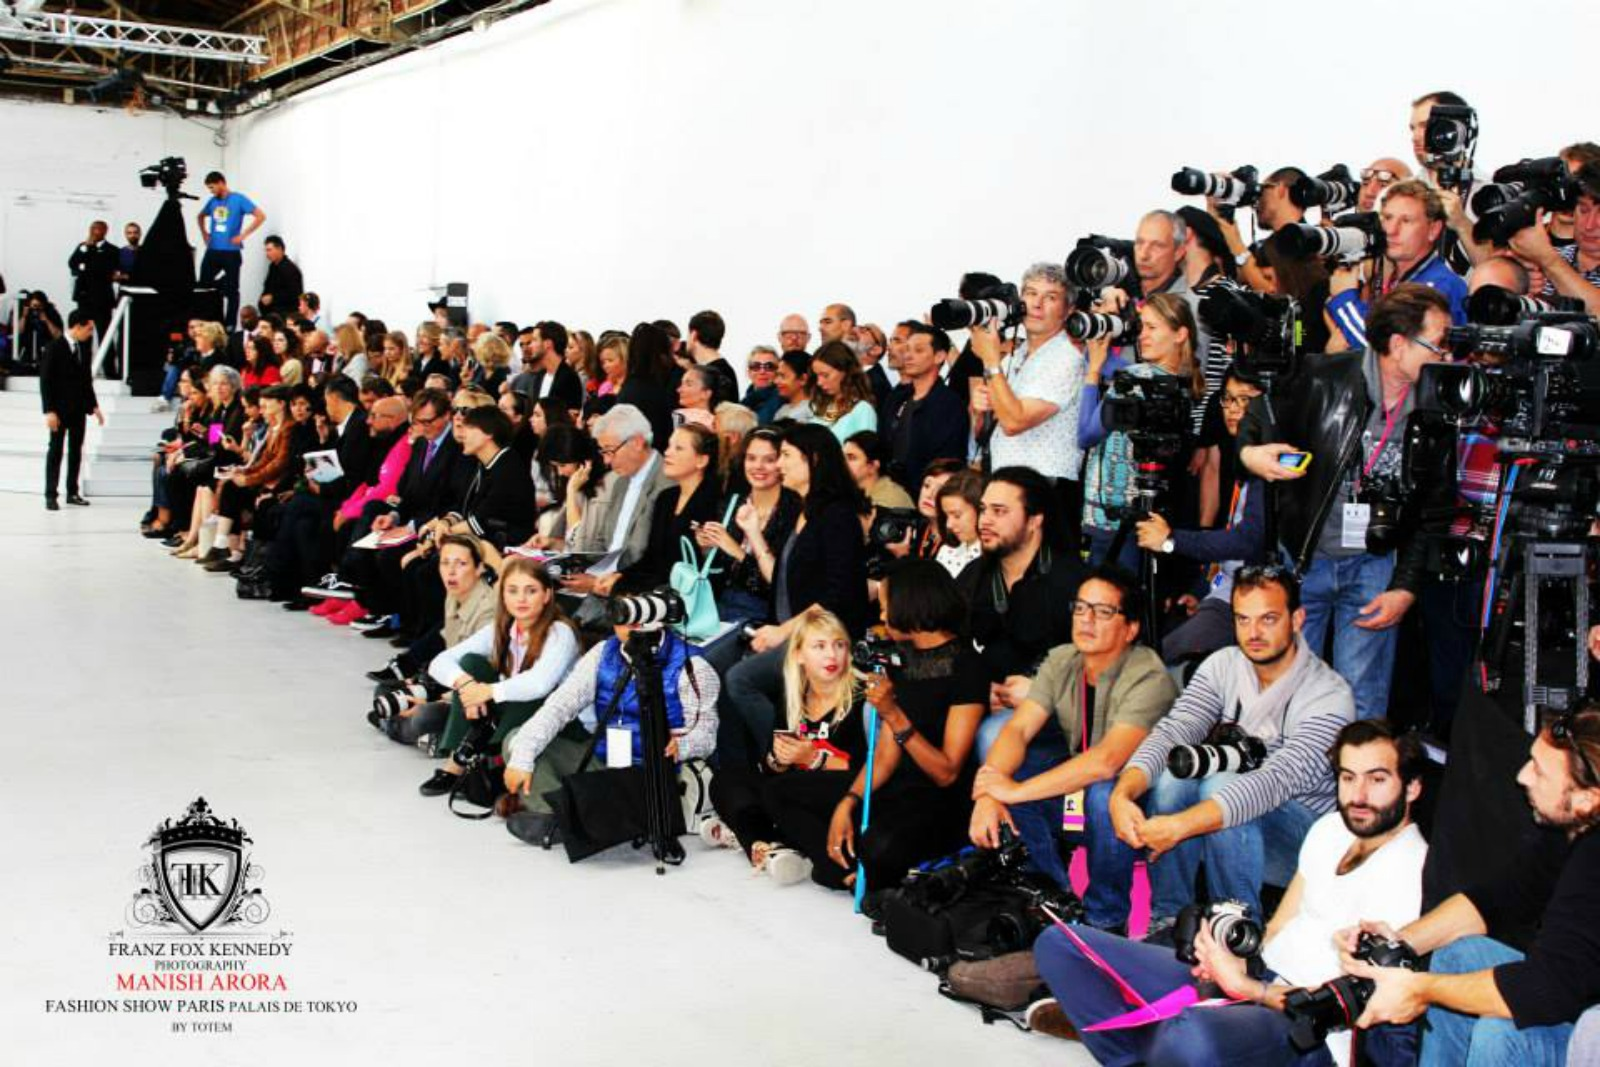 Manish Arora Fashion Show By FFK